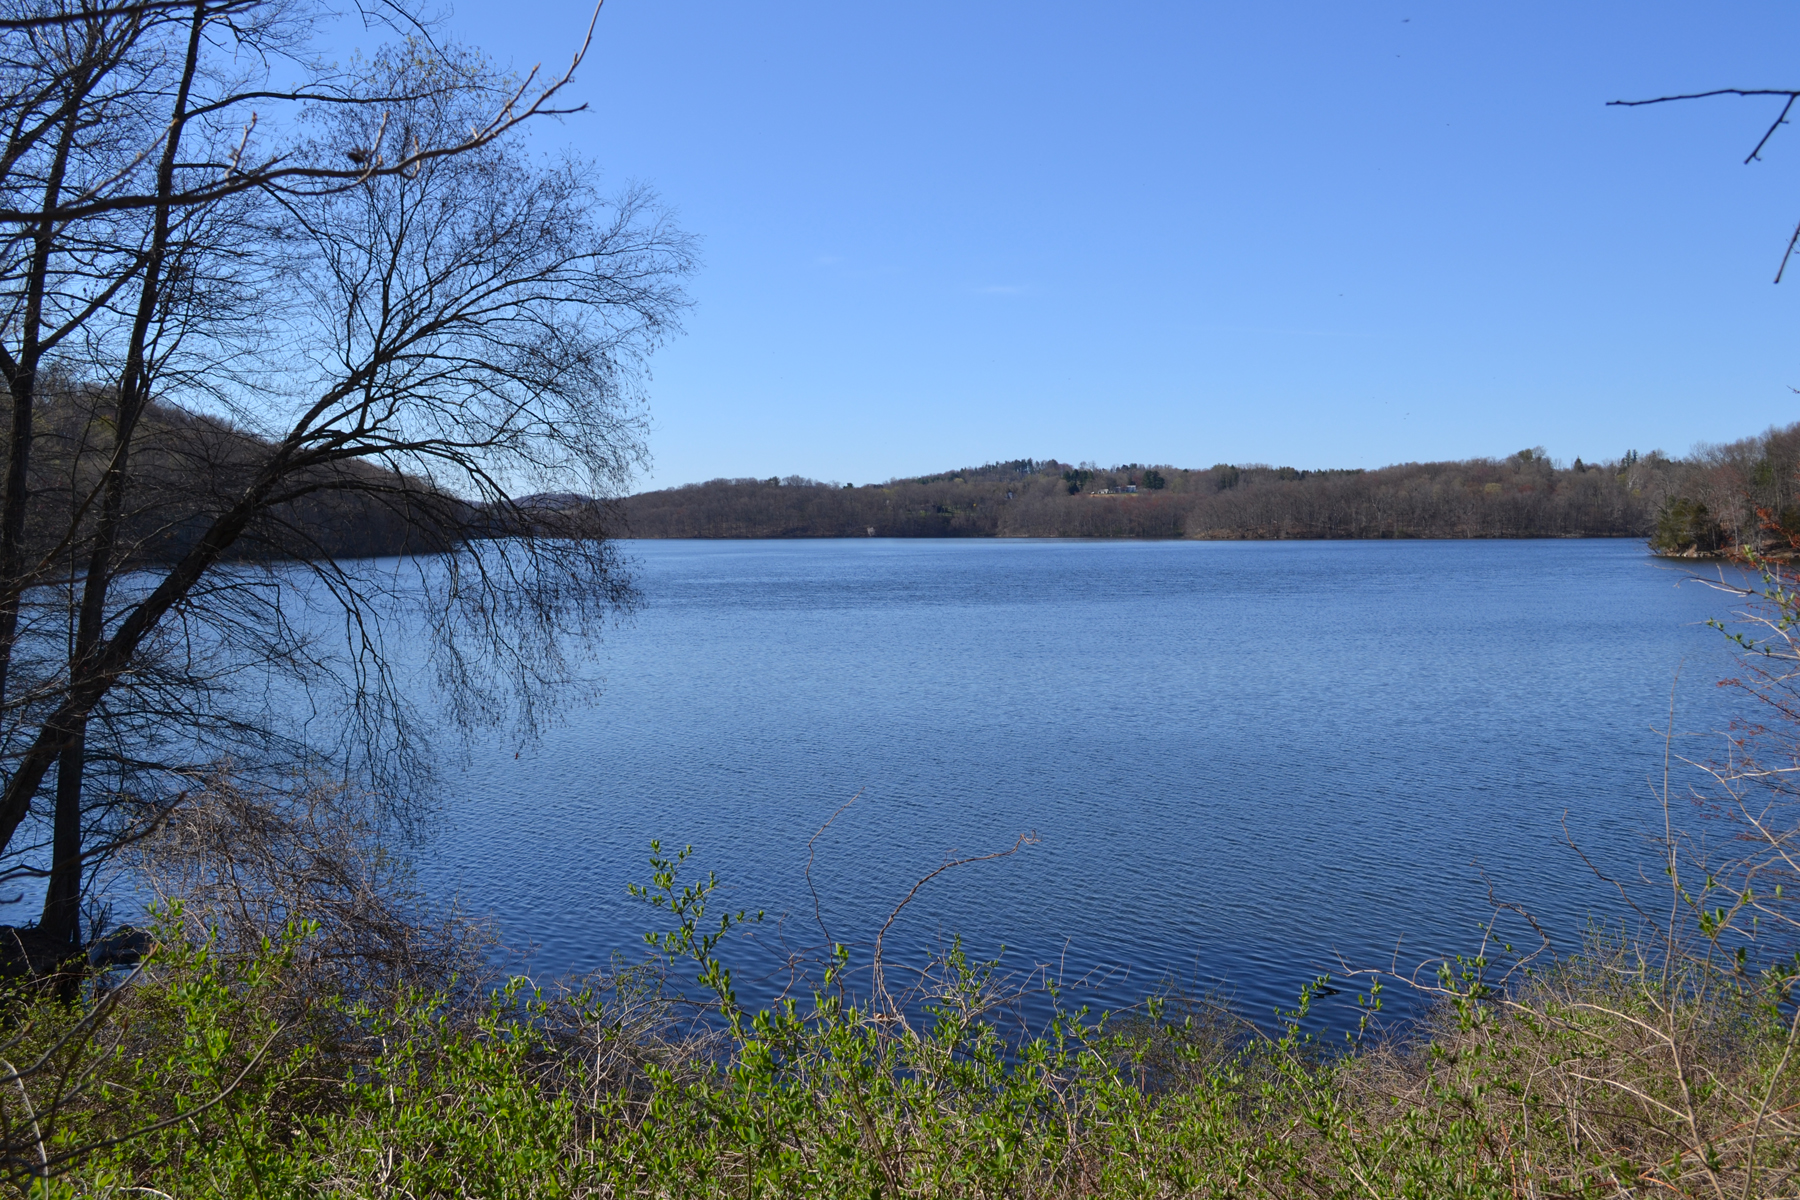 Single Family Homes for Sale at Reservoir Views 199 Upper Hook Road Katonah, New York 10536 United States